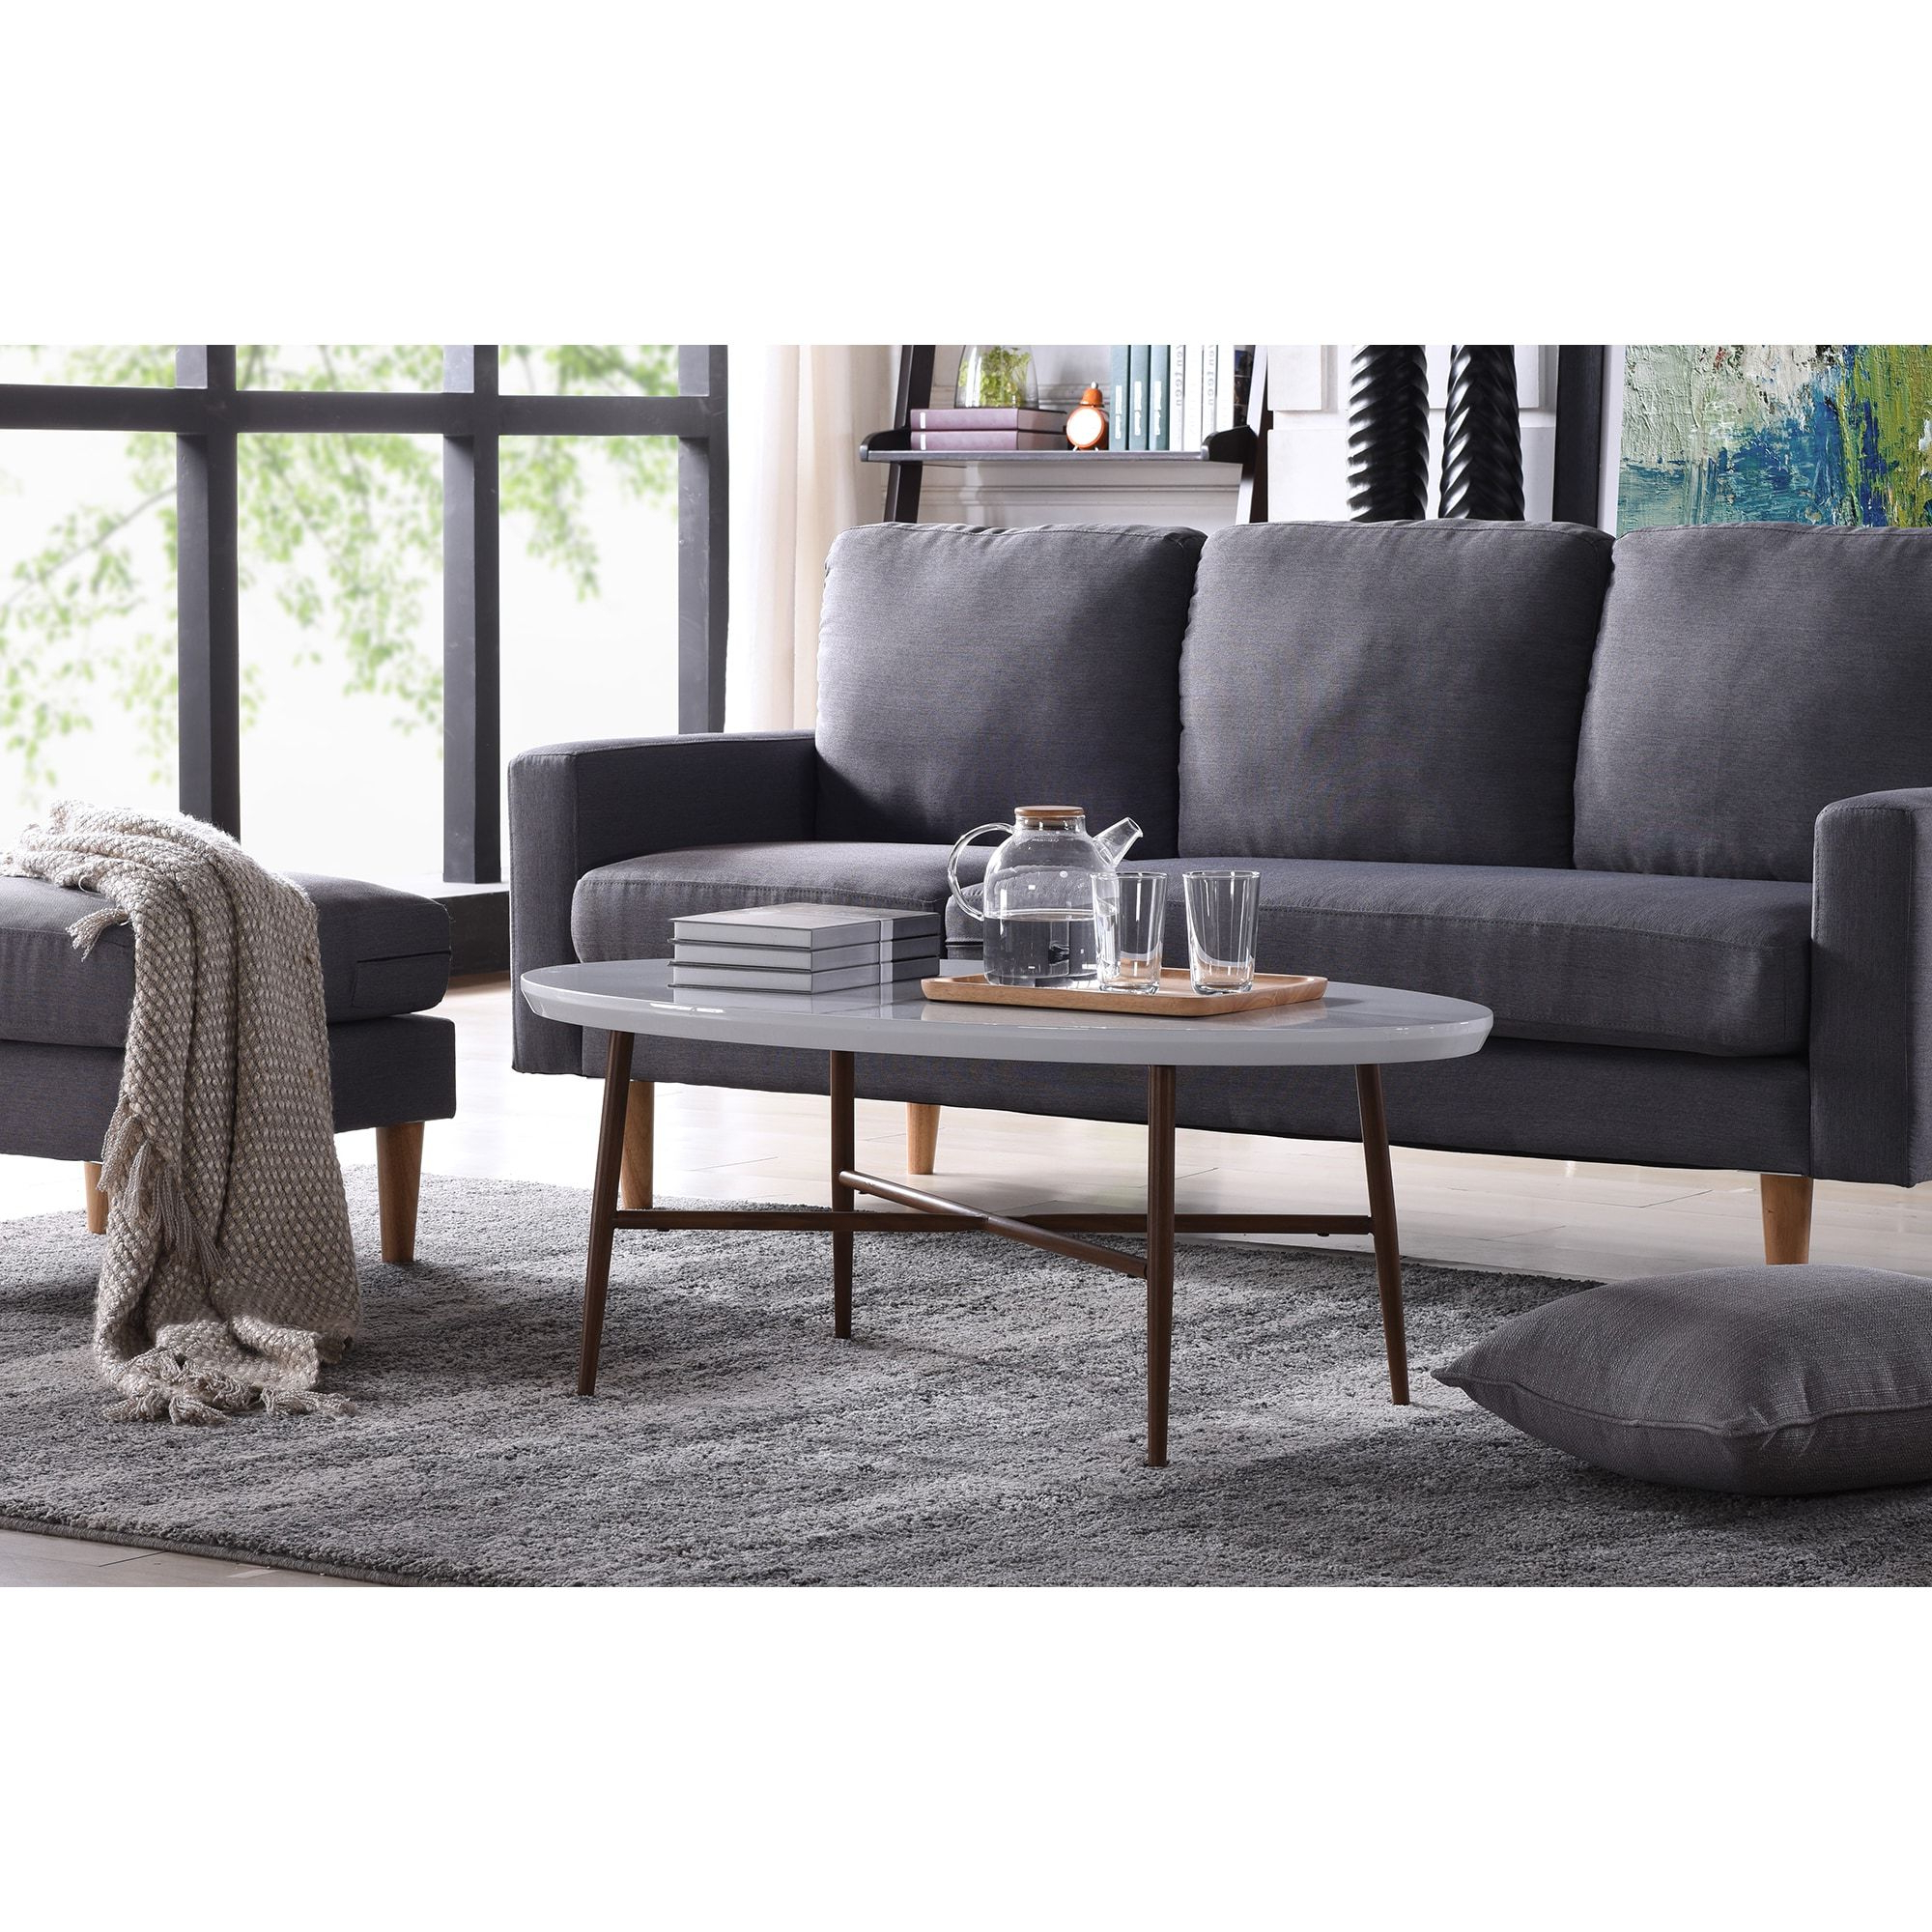 Fashionable Handy Living Miami White Oval Coffee Tables With Brown Metal Legs Inside Handy Living Miami White Oval Coffee Table With Brown Metal (View 10 of 20)